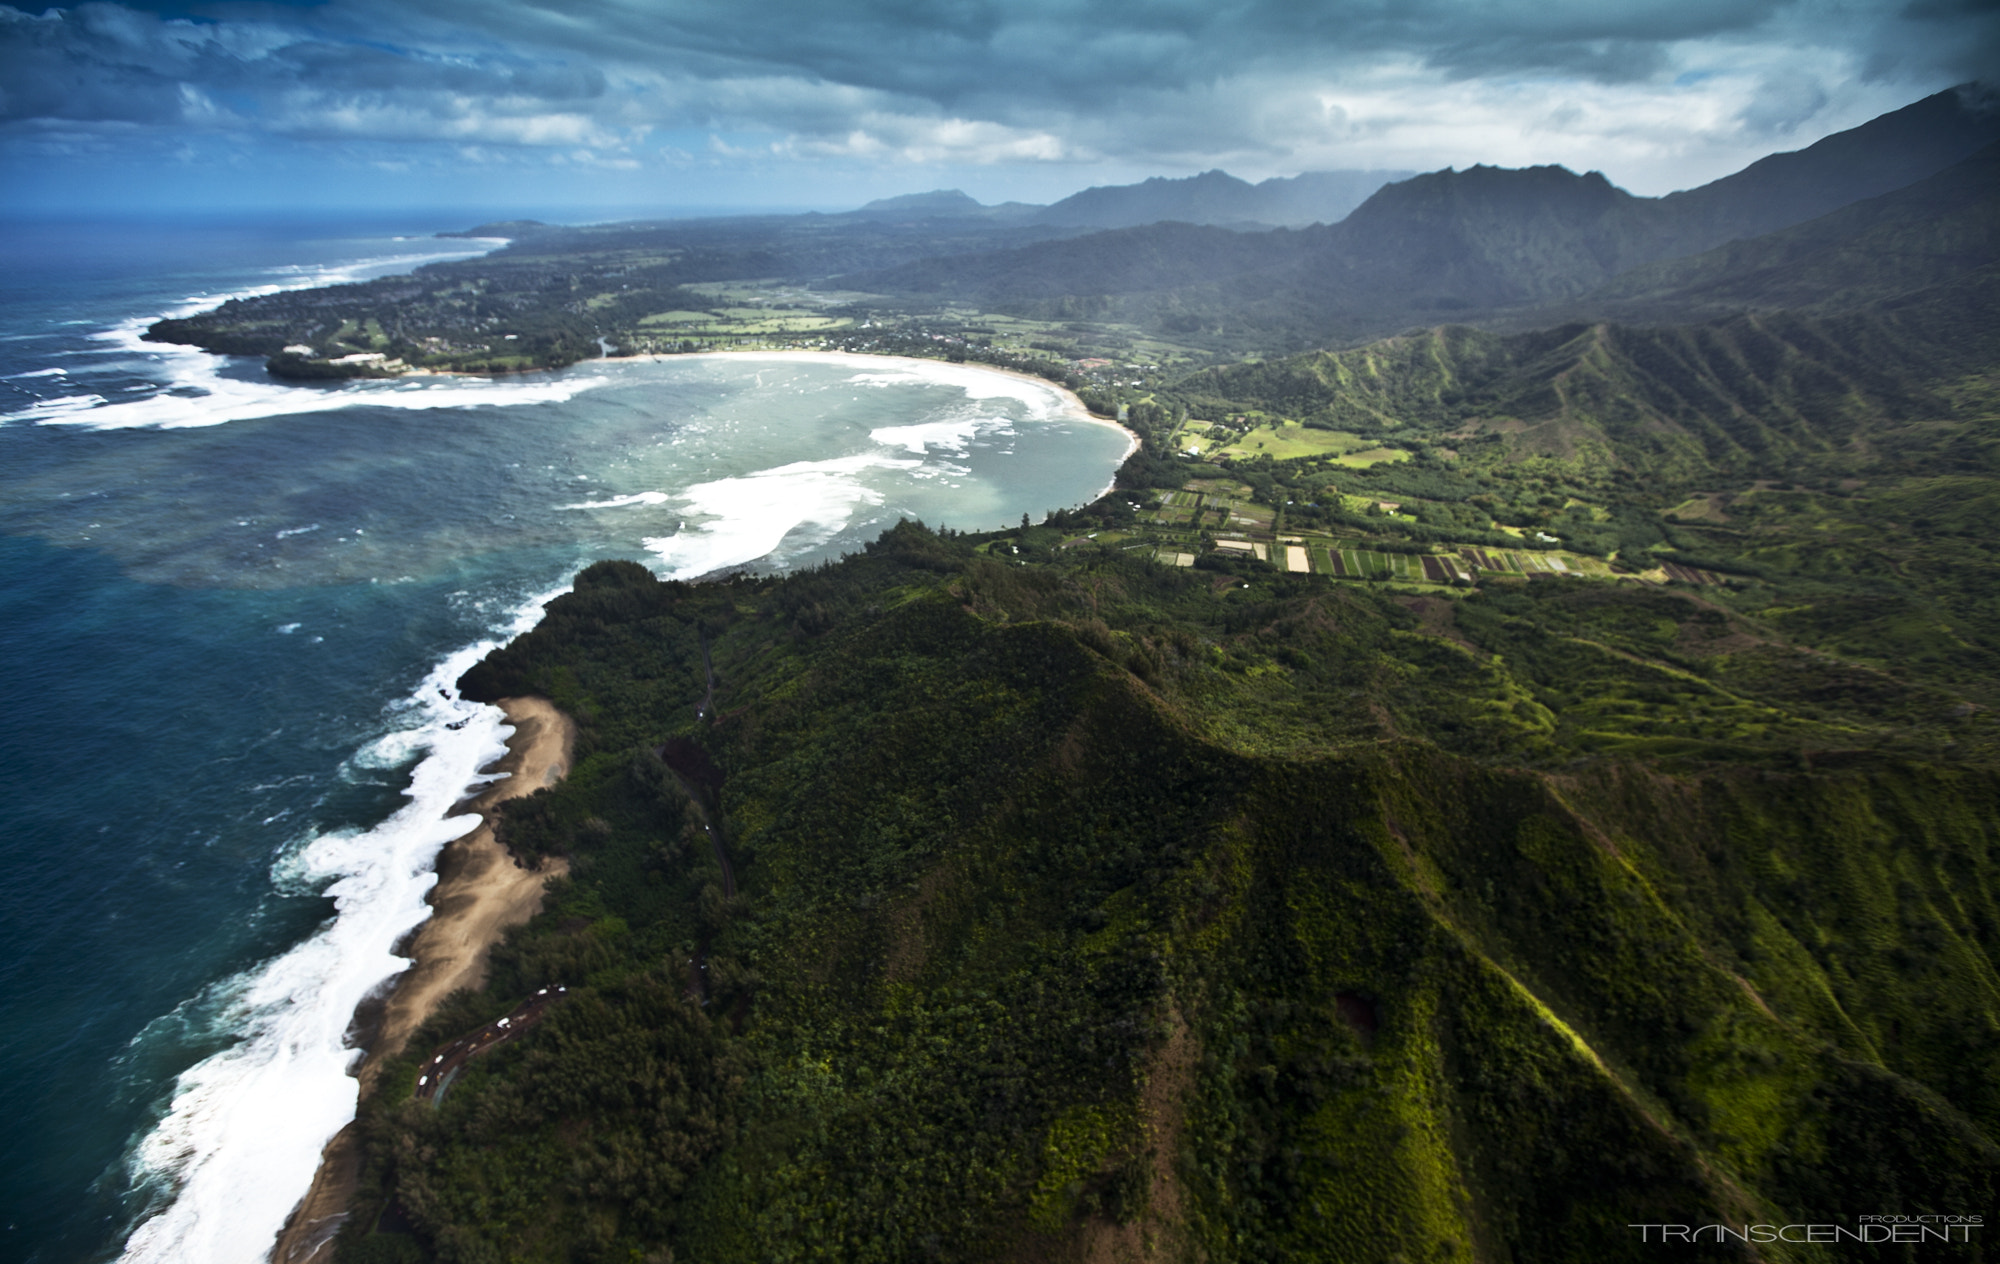 Photograph Hanalei Bay by Transcendent Productions on 500px